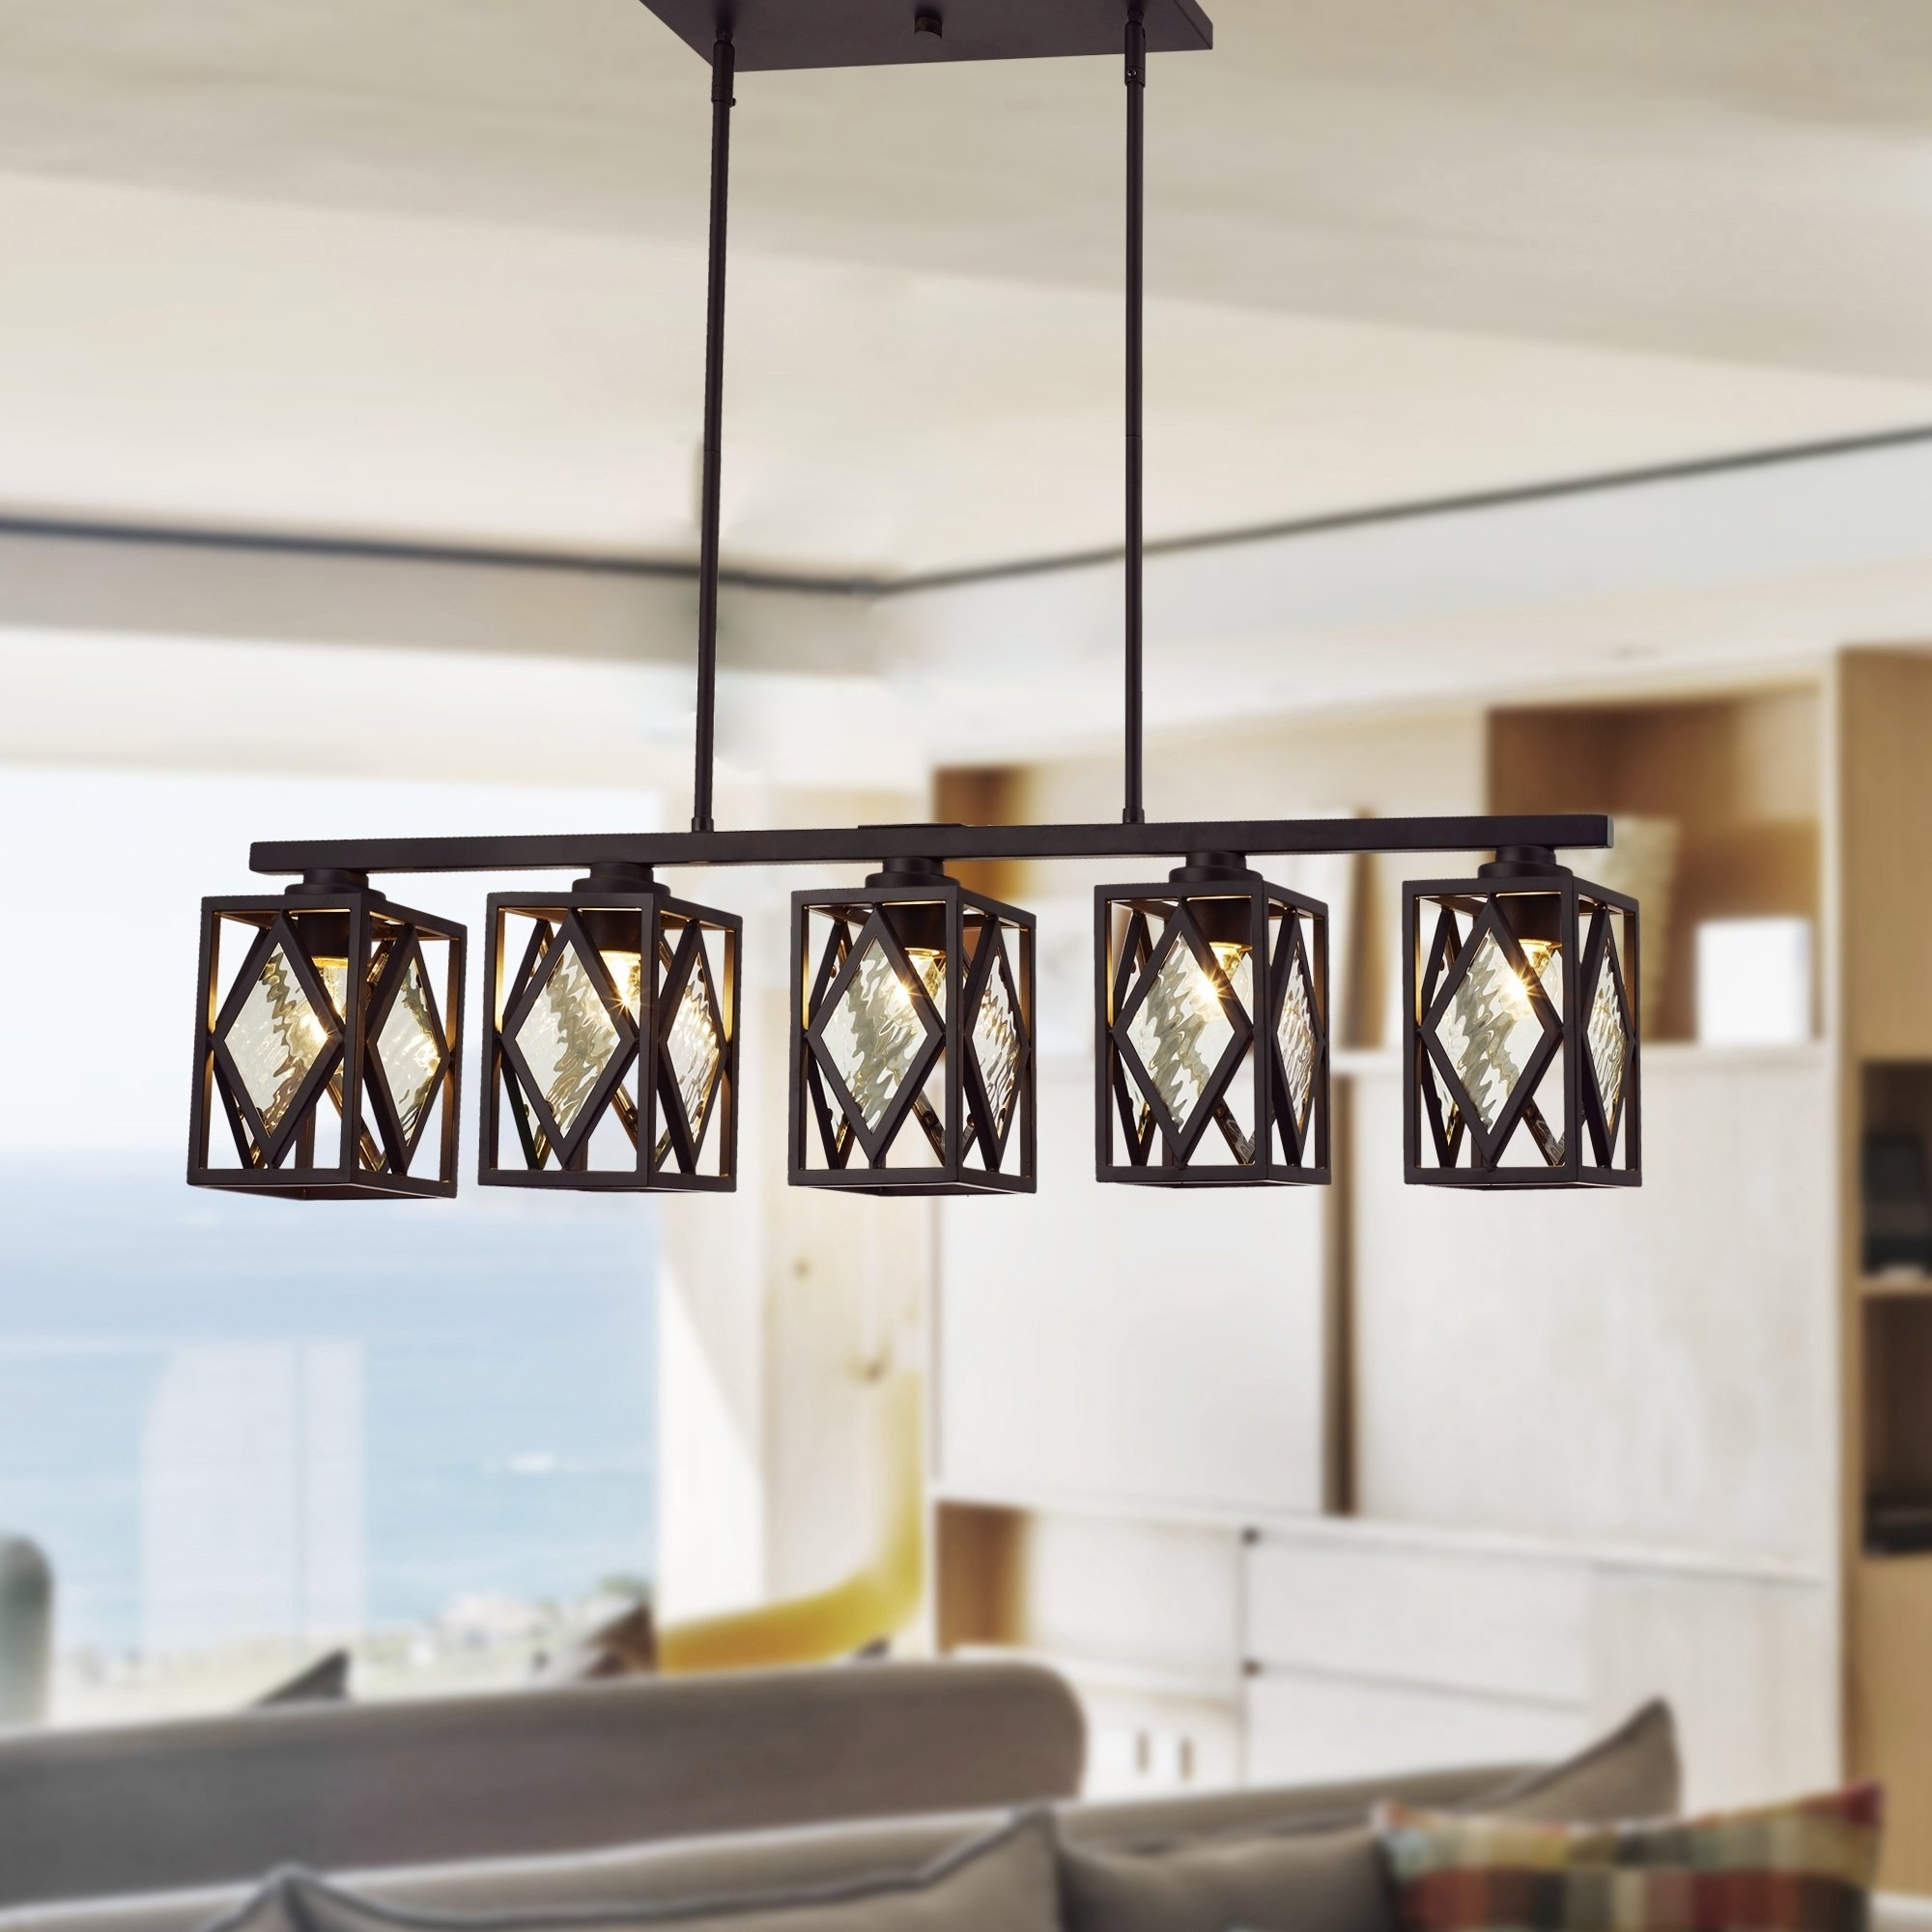 Delon 5 Light Kitchen Island Linear Pendants Intended For Best And Newest Fanwel Oil Rubbed Bronze 5 Light Linear Chandelier (View 6 of 20)